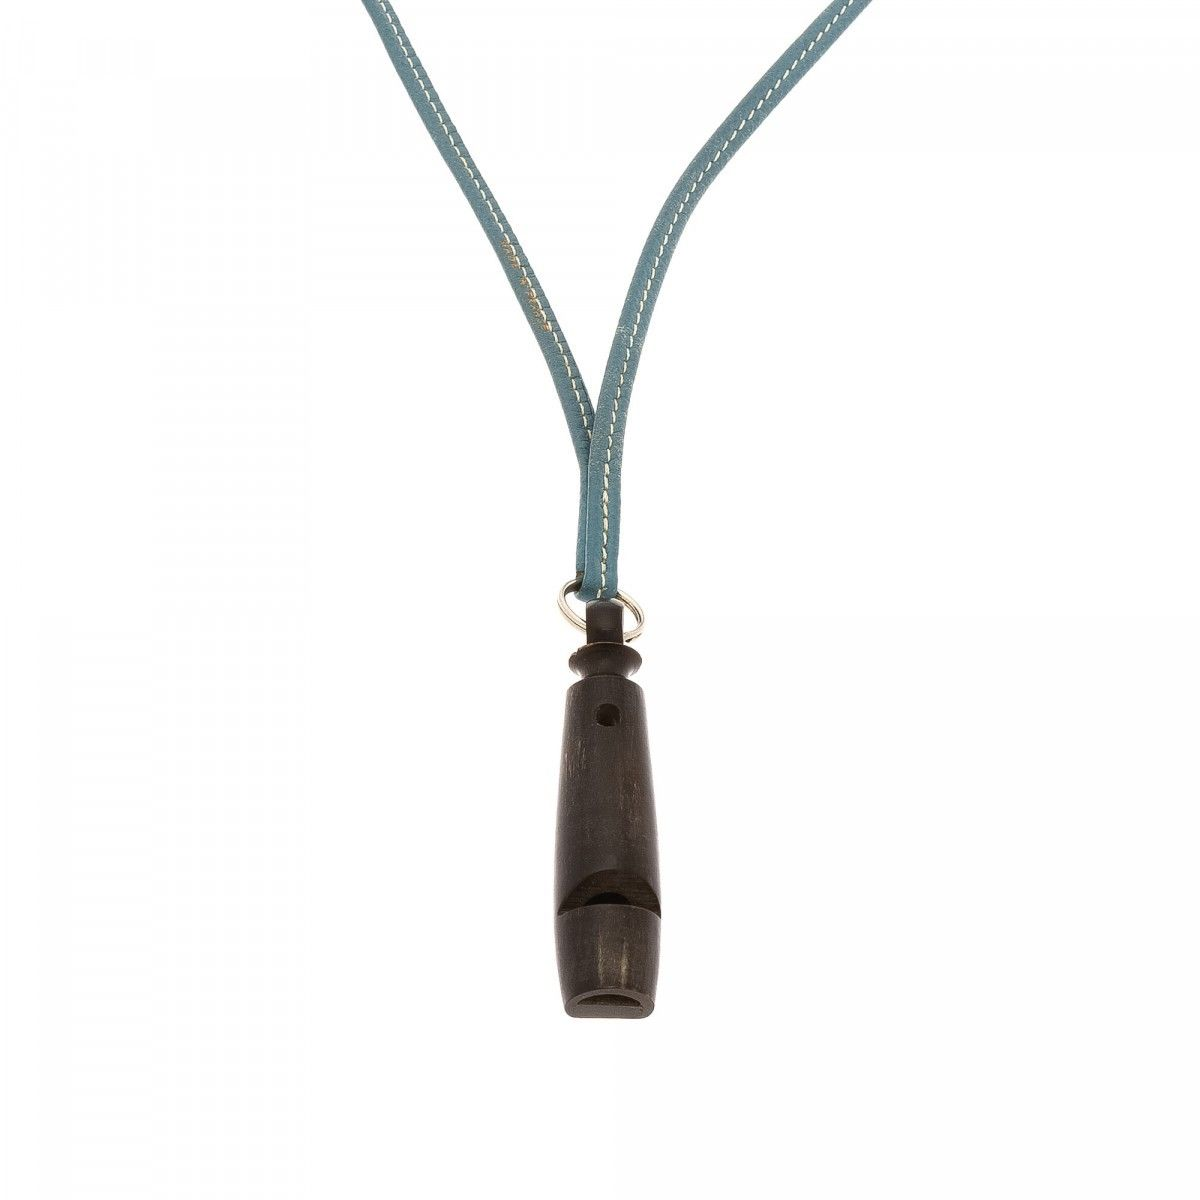 whistle buy silver thunderer sterling necklace online